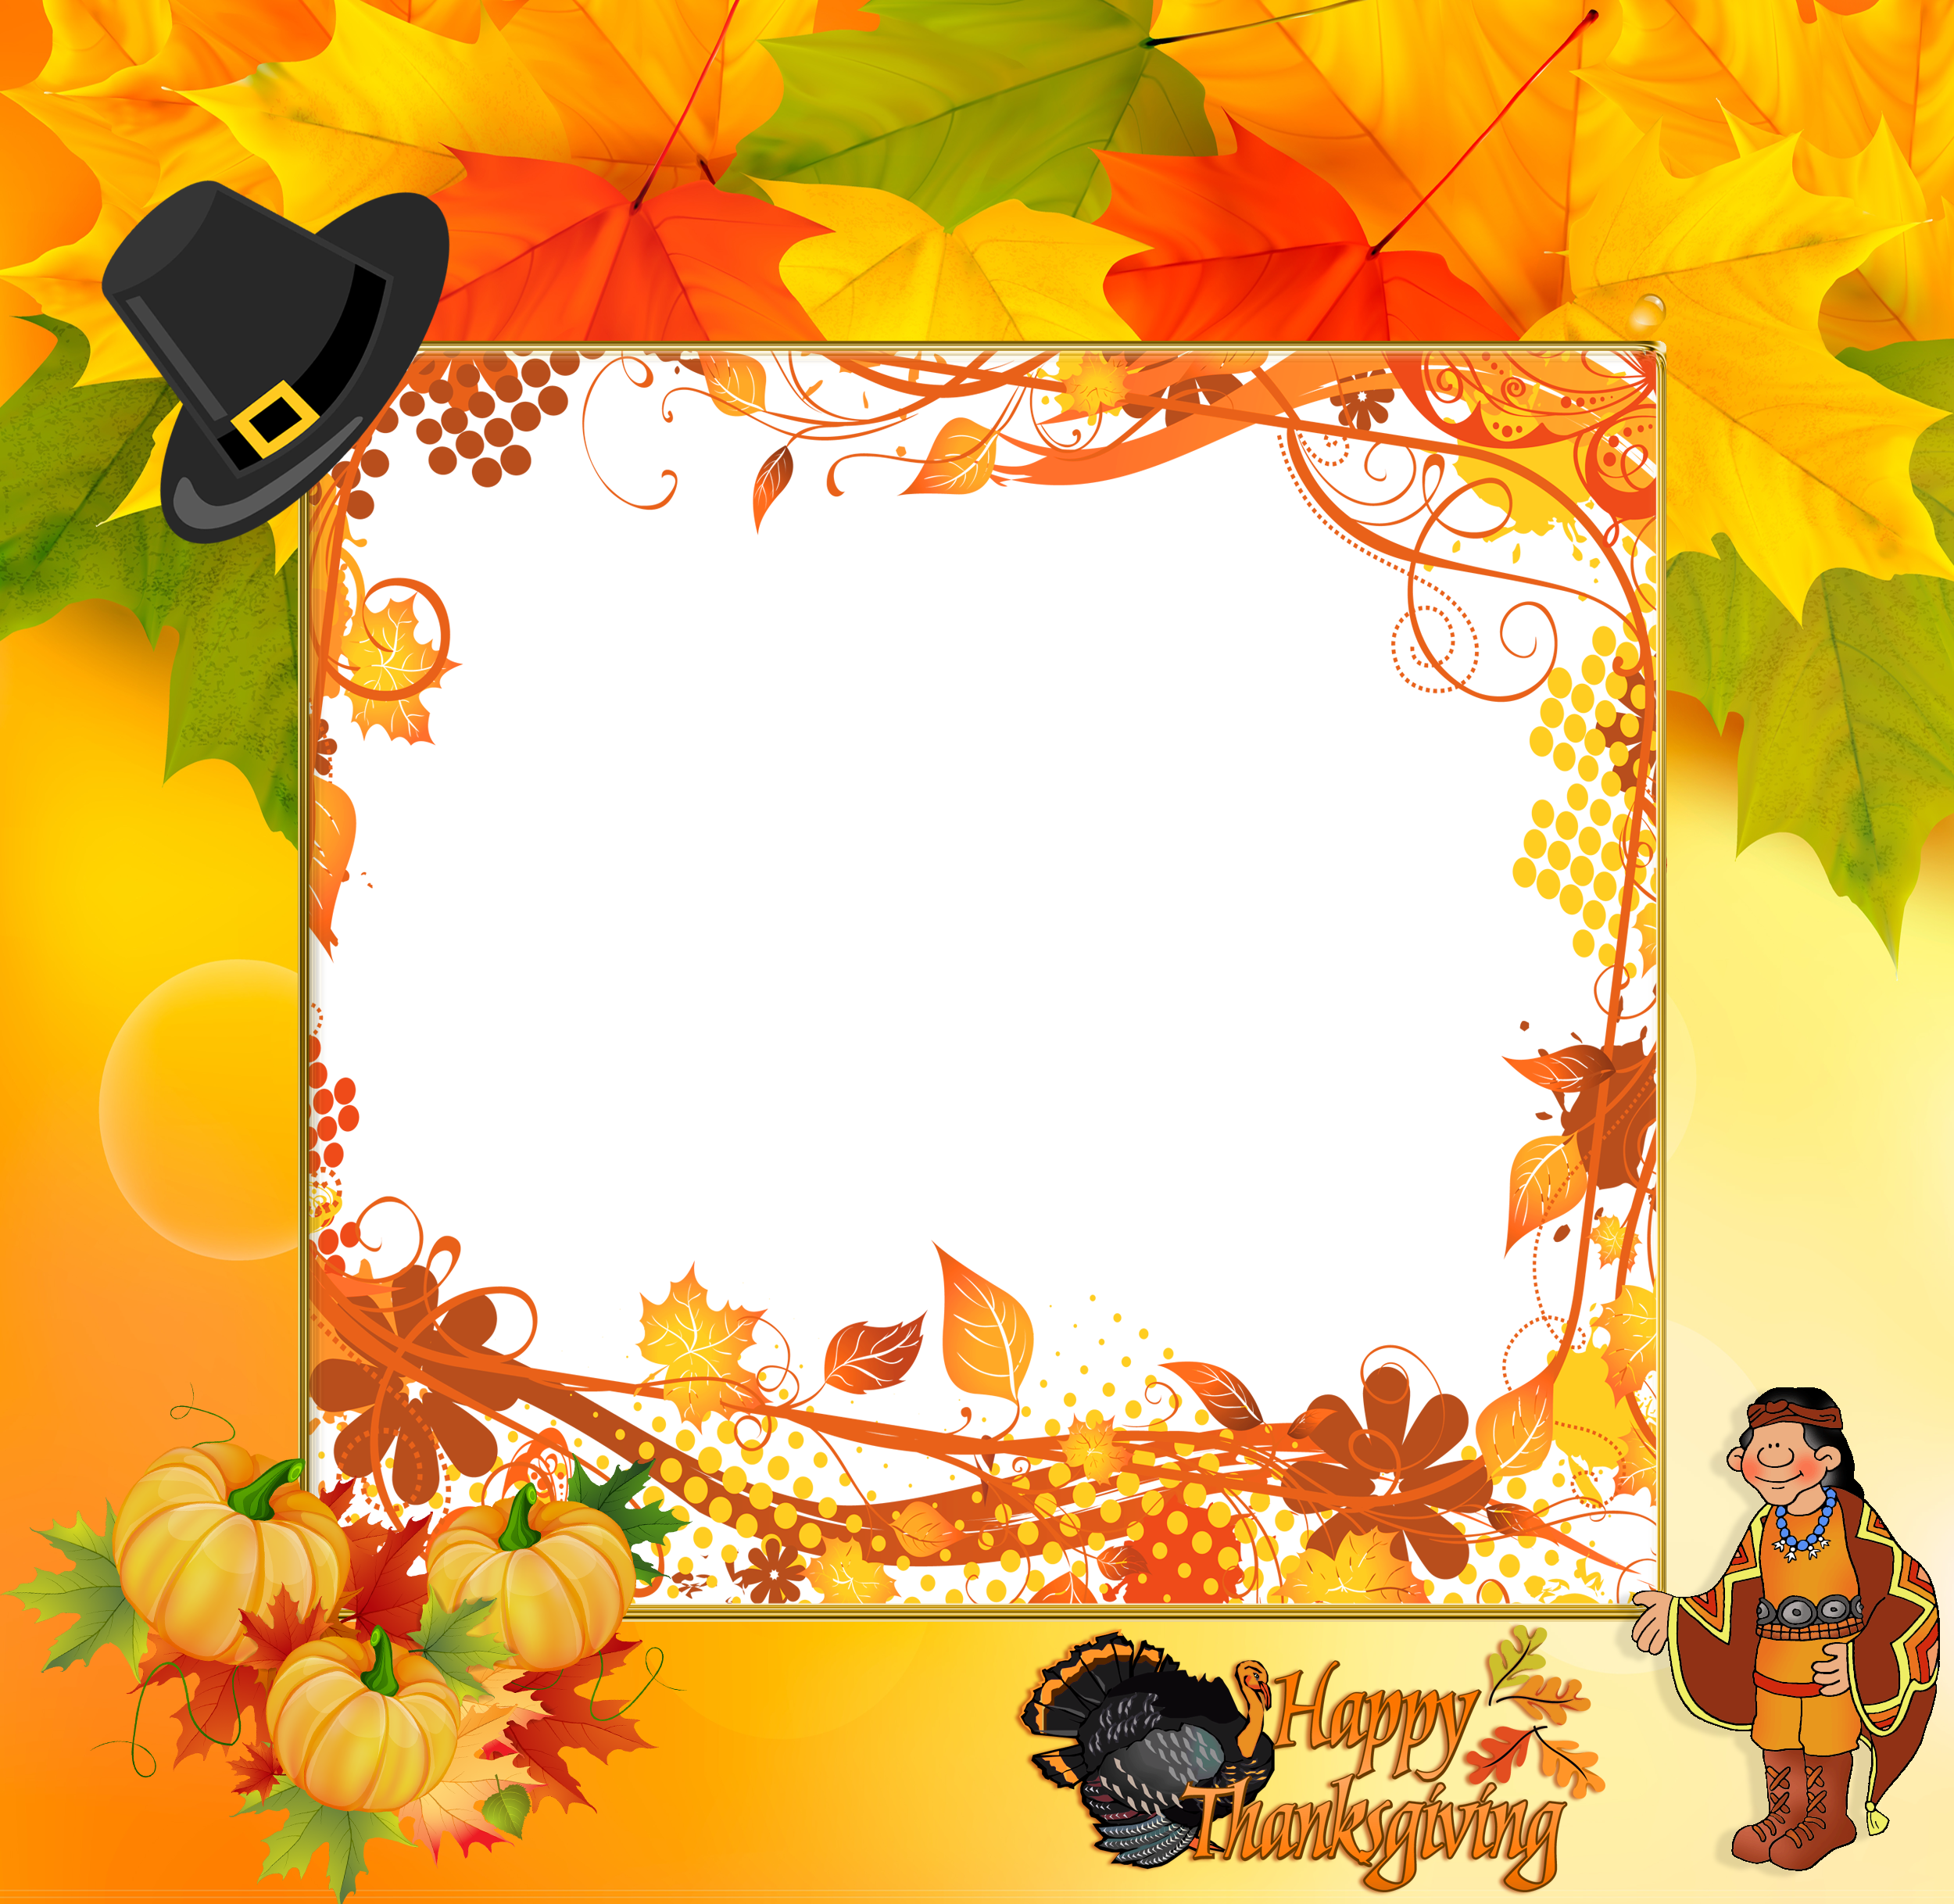 Happy thanksgiving border clipart vector royalty free download Transparent Happy Thanksgiving Frame | Gallery Yopriceville - High ... vector royalty free download